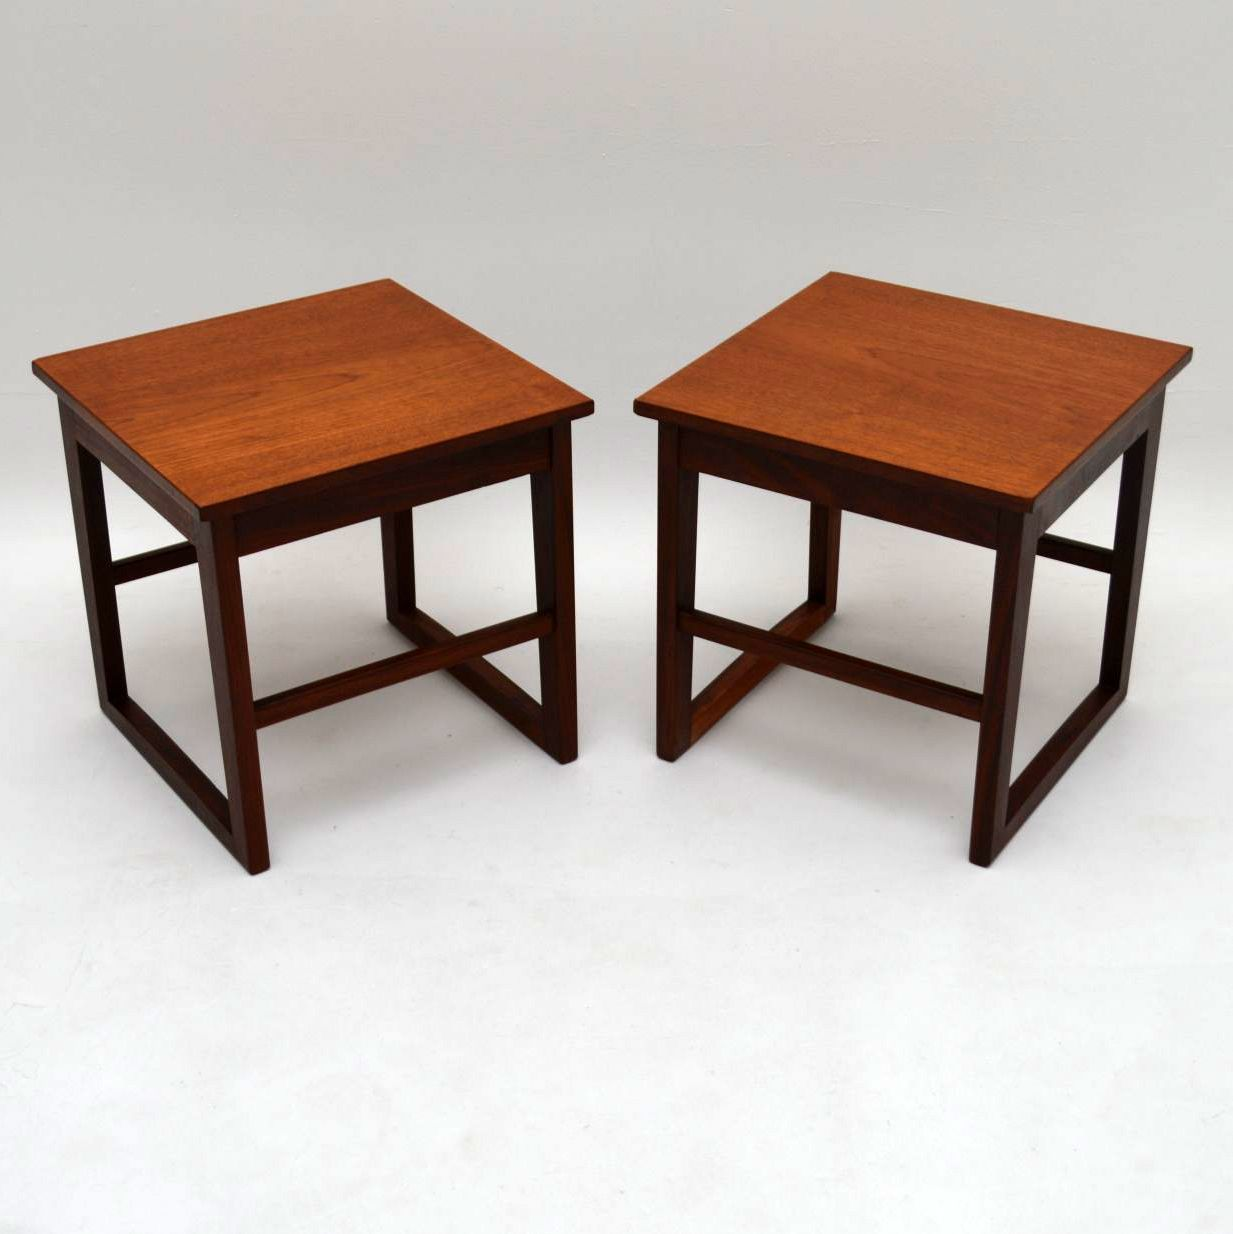 Vintage Teak Coffee Tables: Retro Teak Nesting Coffee Table Vintage 1960's